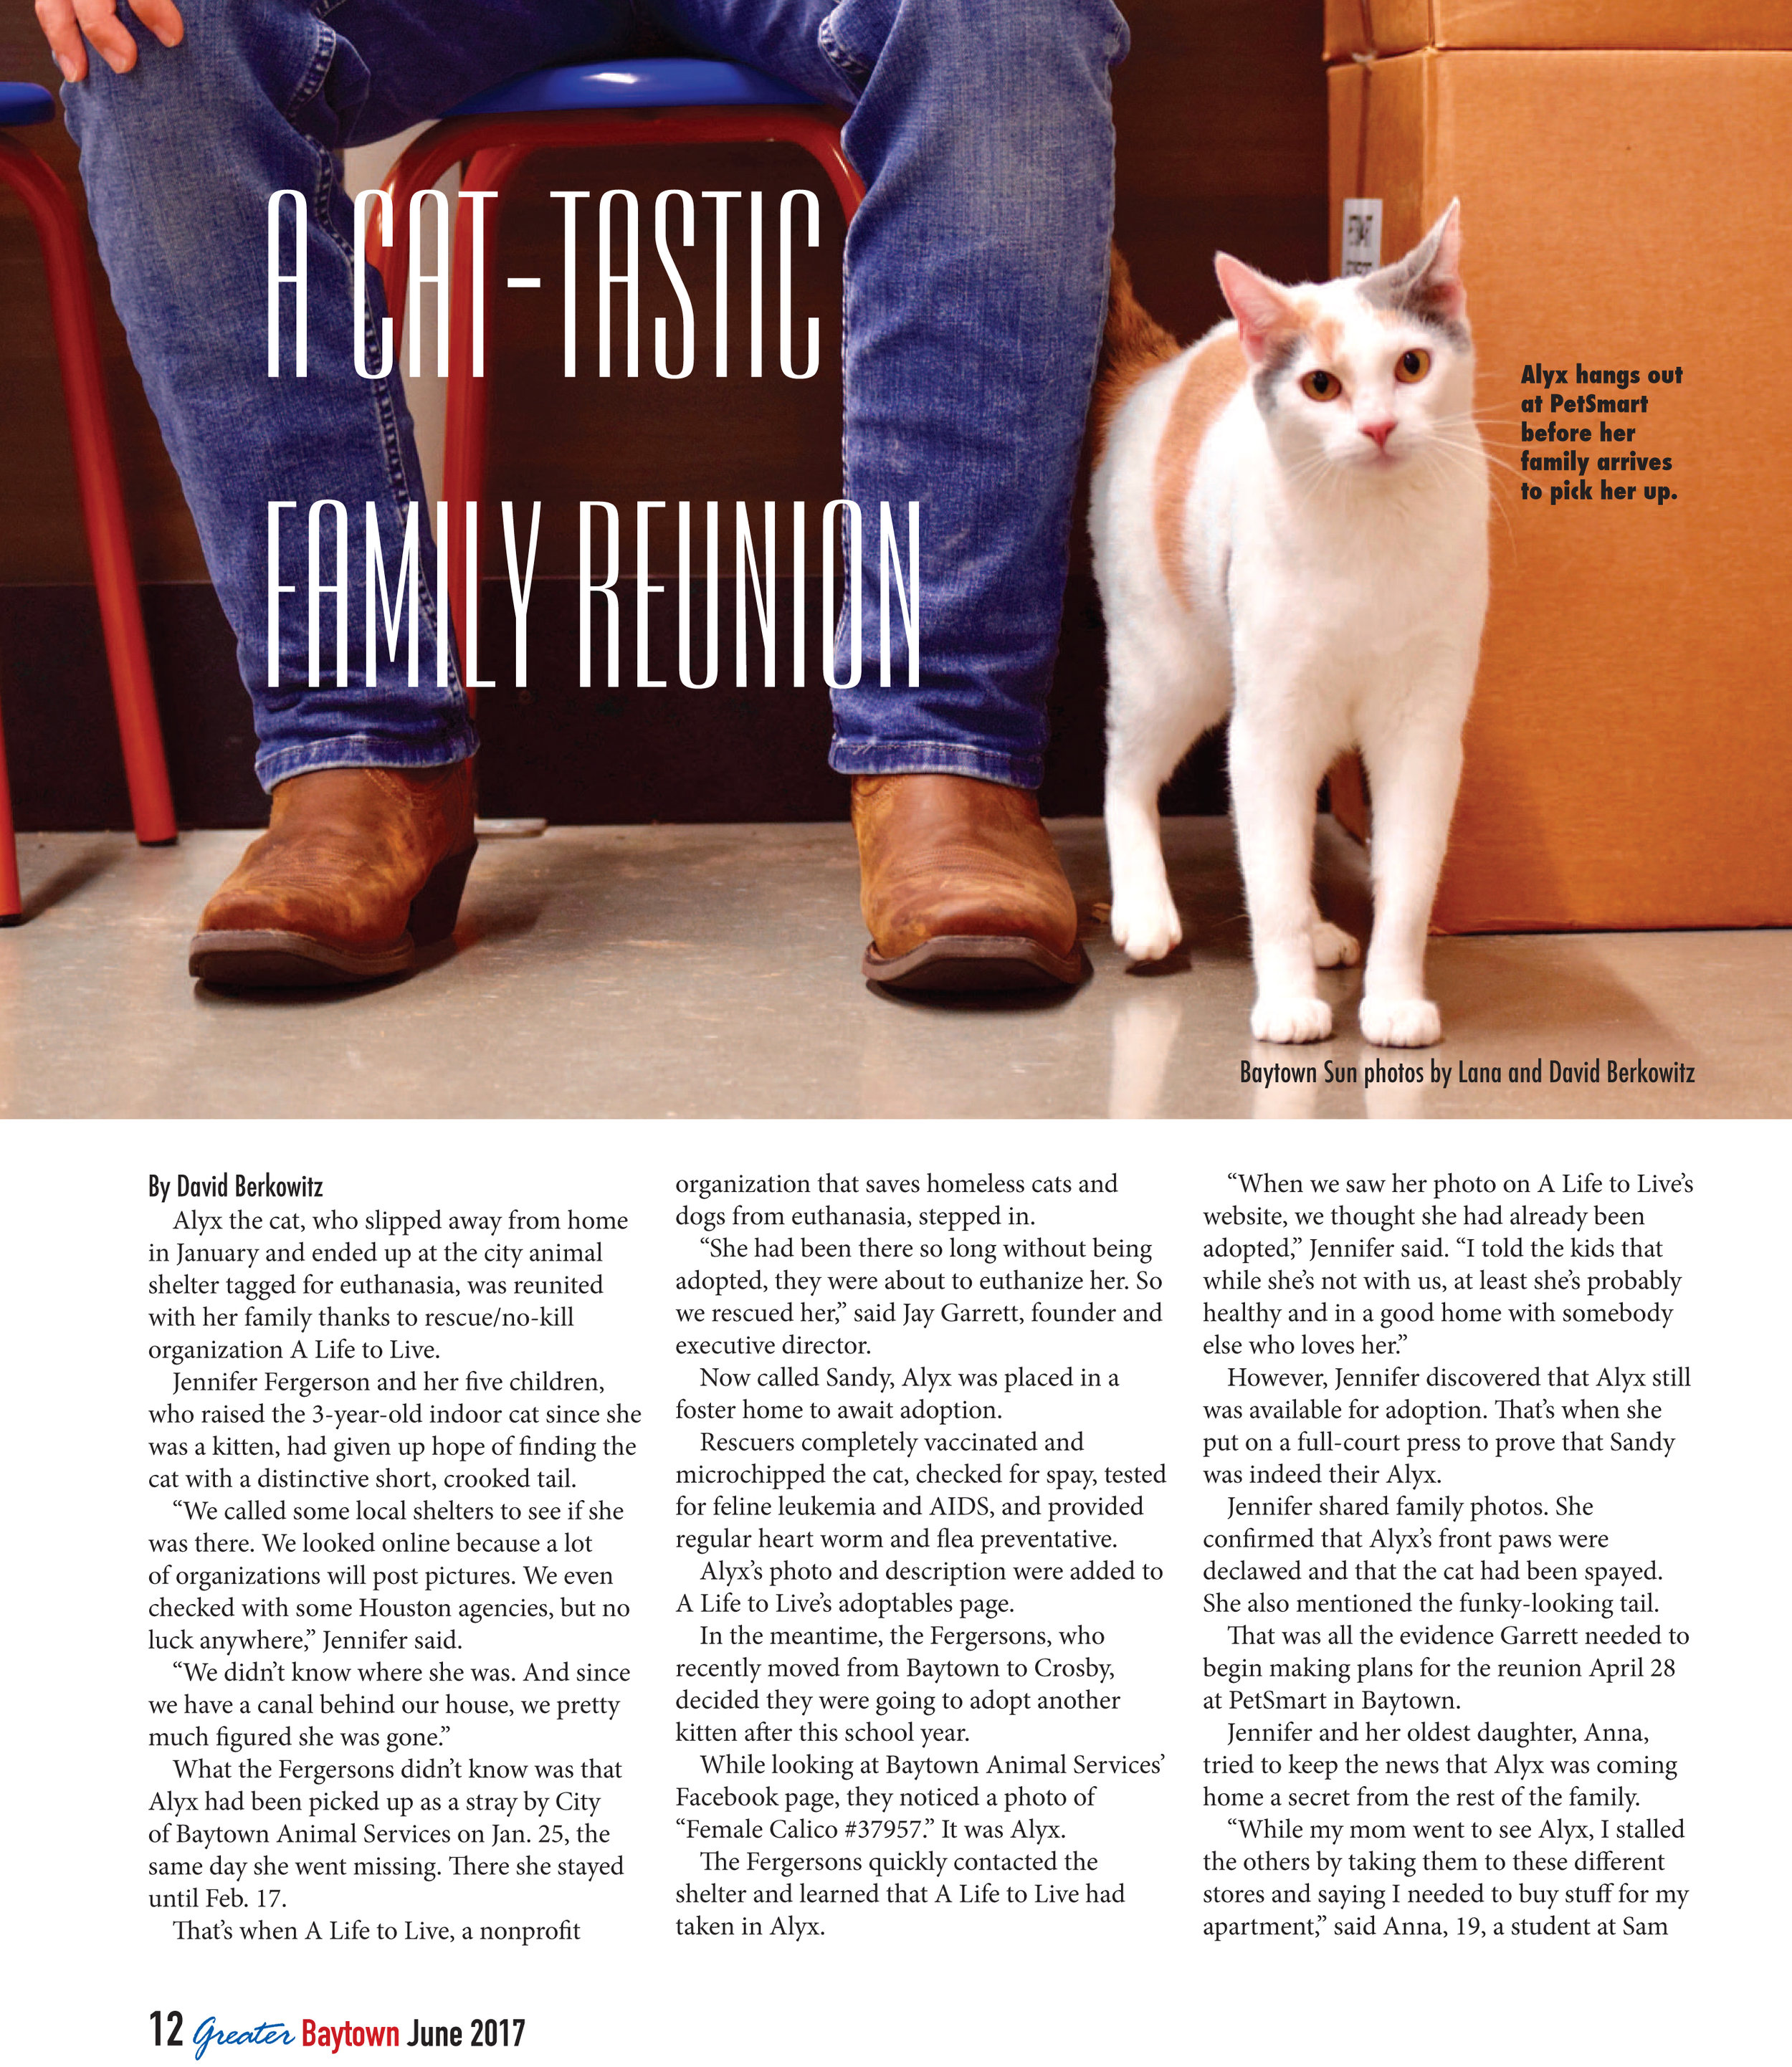 06.09.17 - Greater Baytown Magazine - Cat Reunion - Page 1.jpg